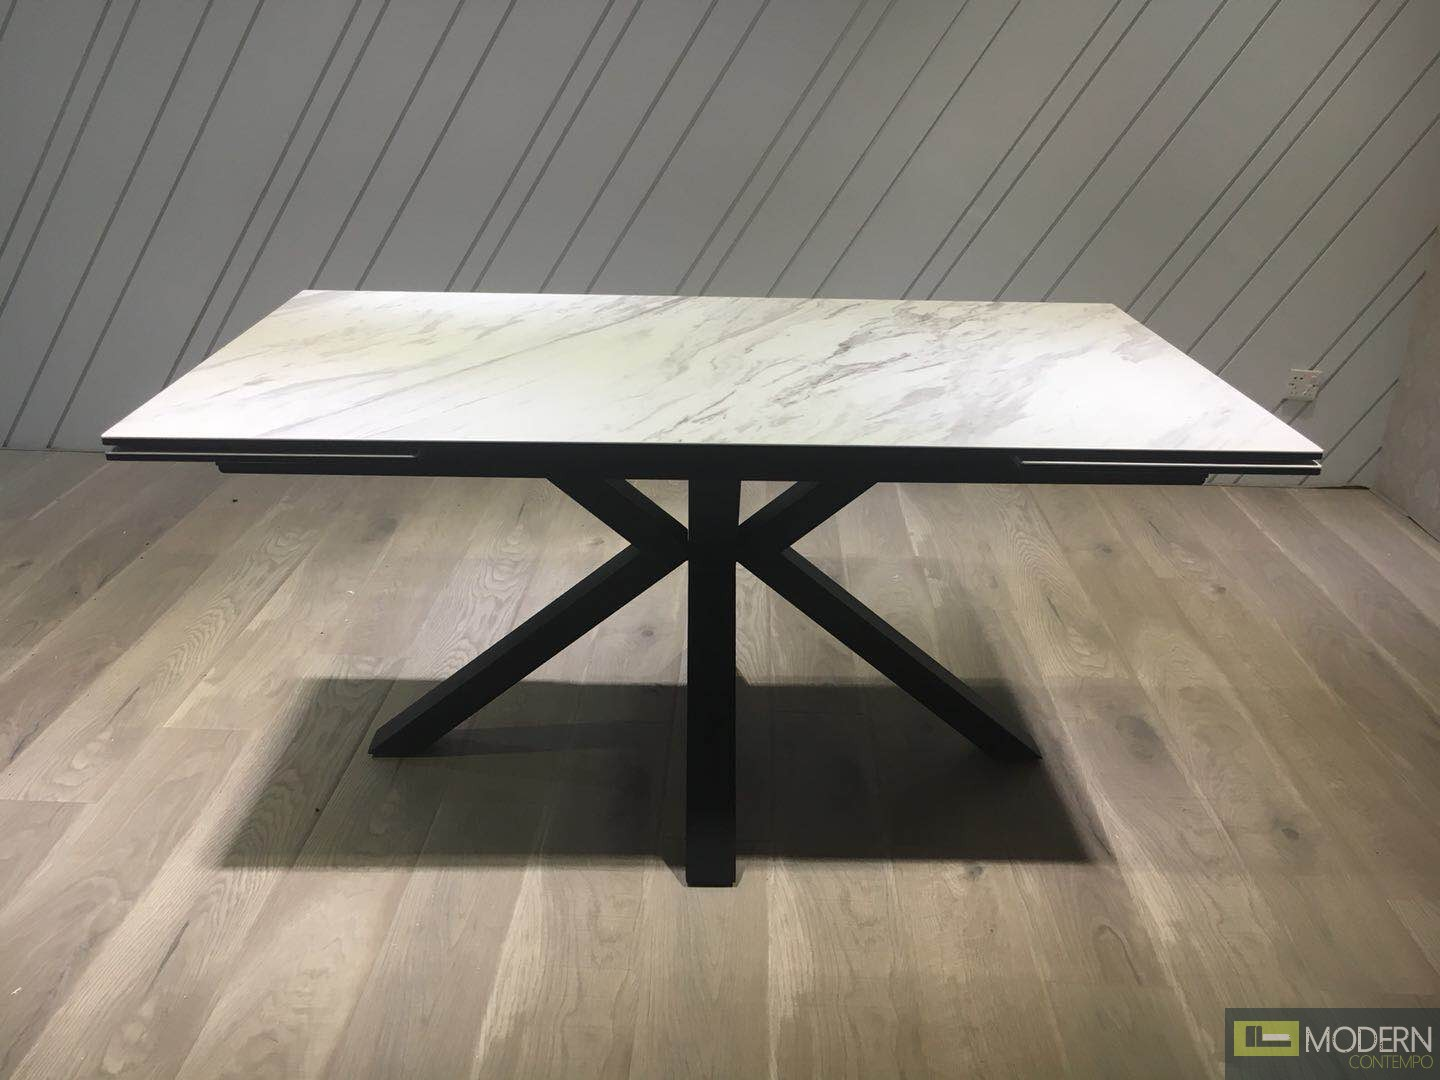 Faux marble glass-top dining table featuring a black matte X-base design and two drop leaf ends